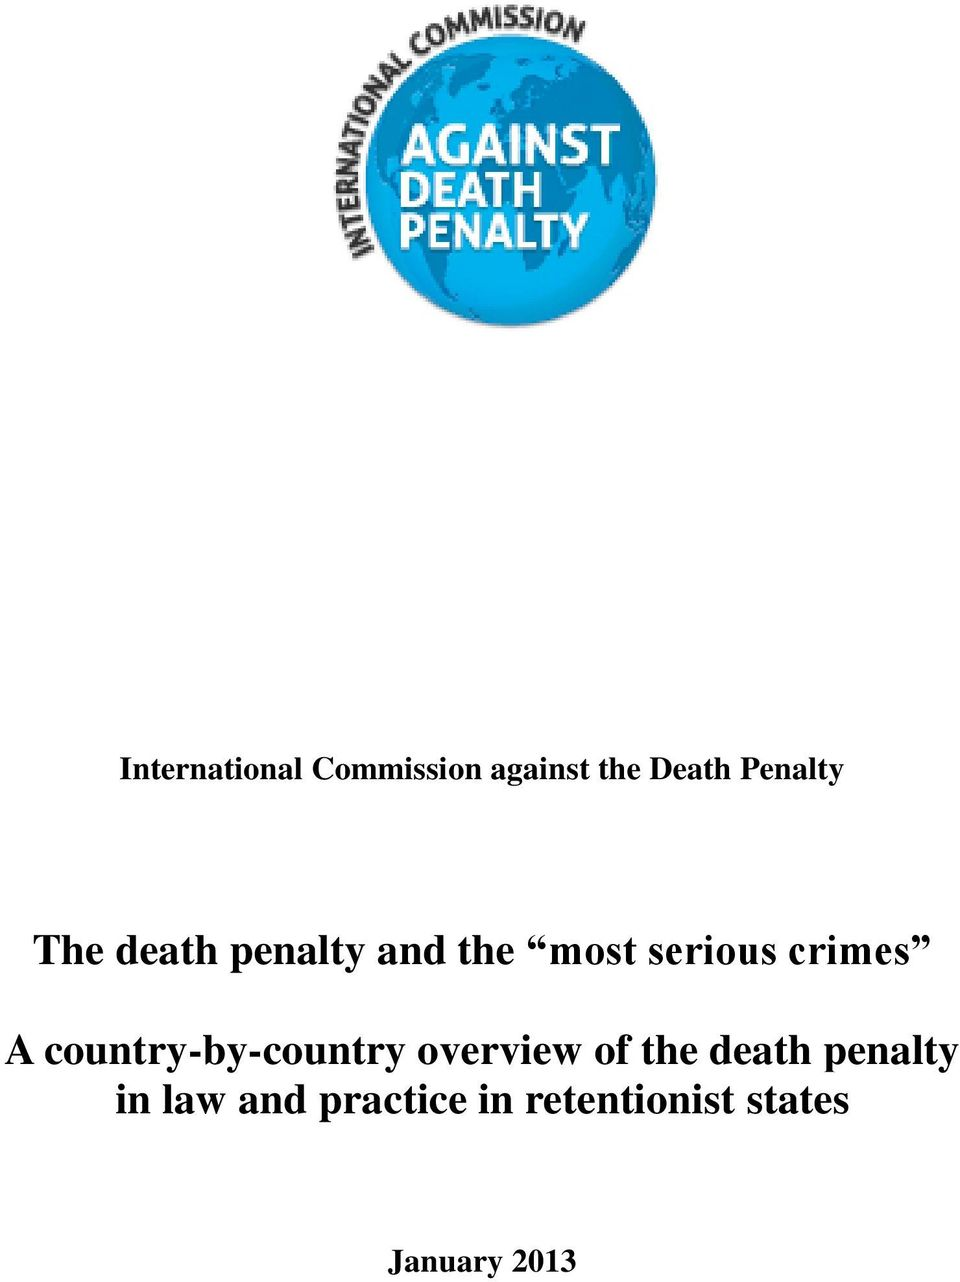 country-by-country overview of the death penalty